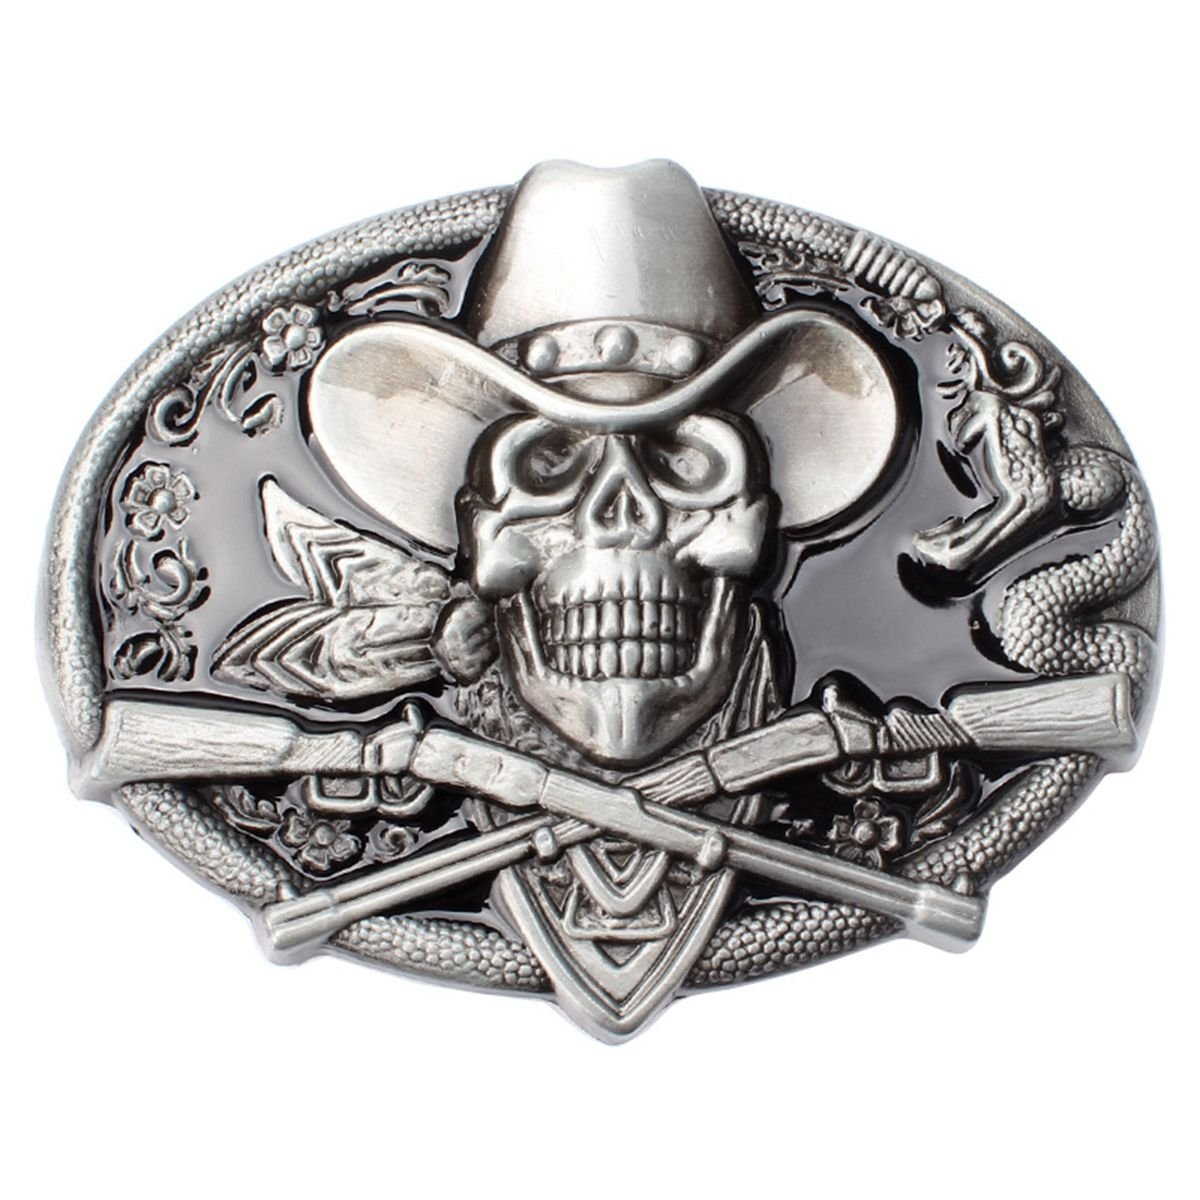 Vintage Pirate Skull Belt Buckle Western Cowboy Native American Motorcyclist (SK-17) SK-16